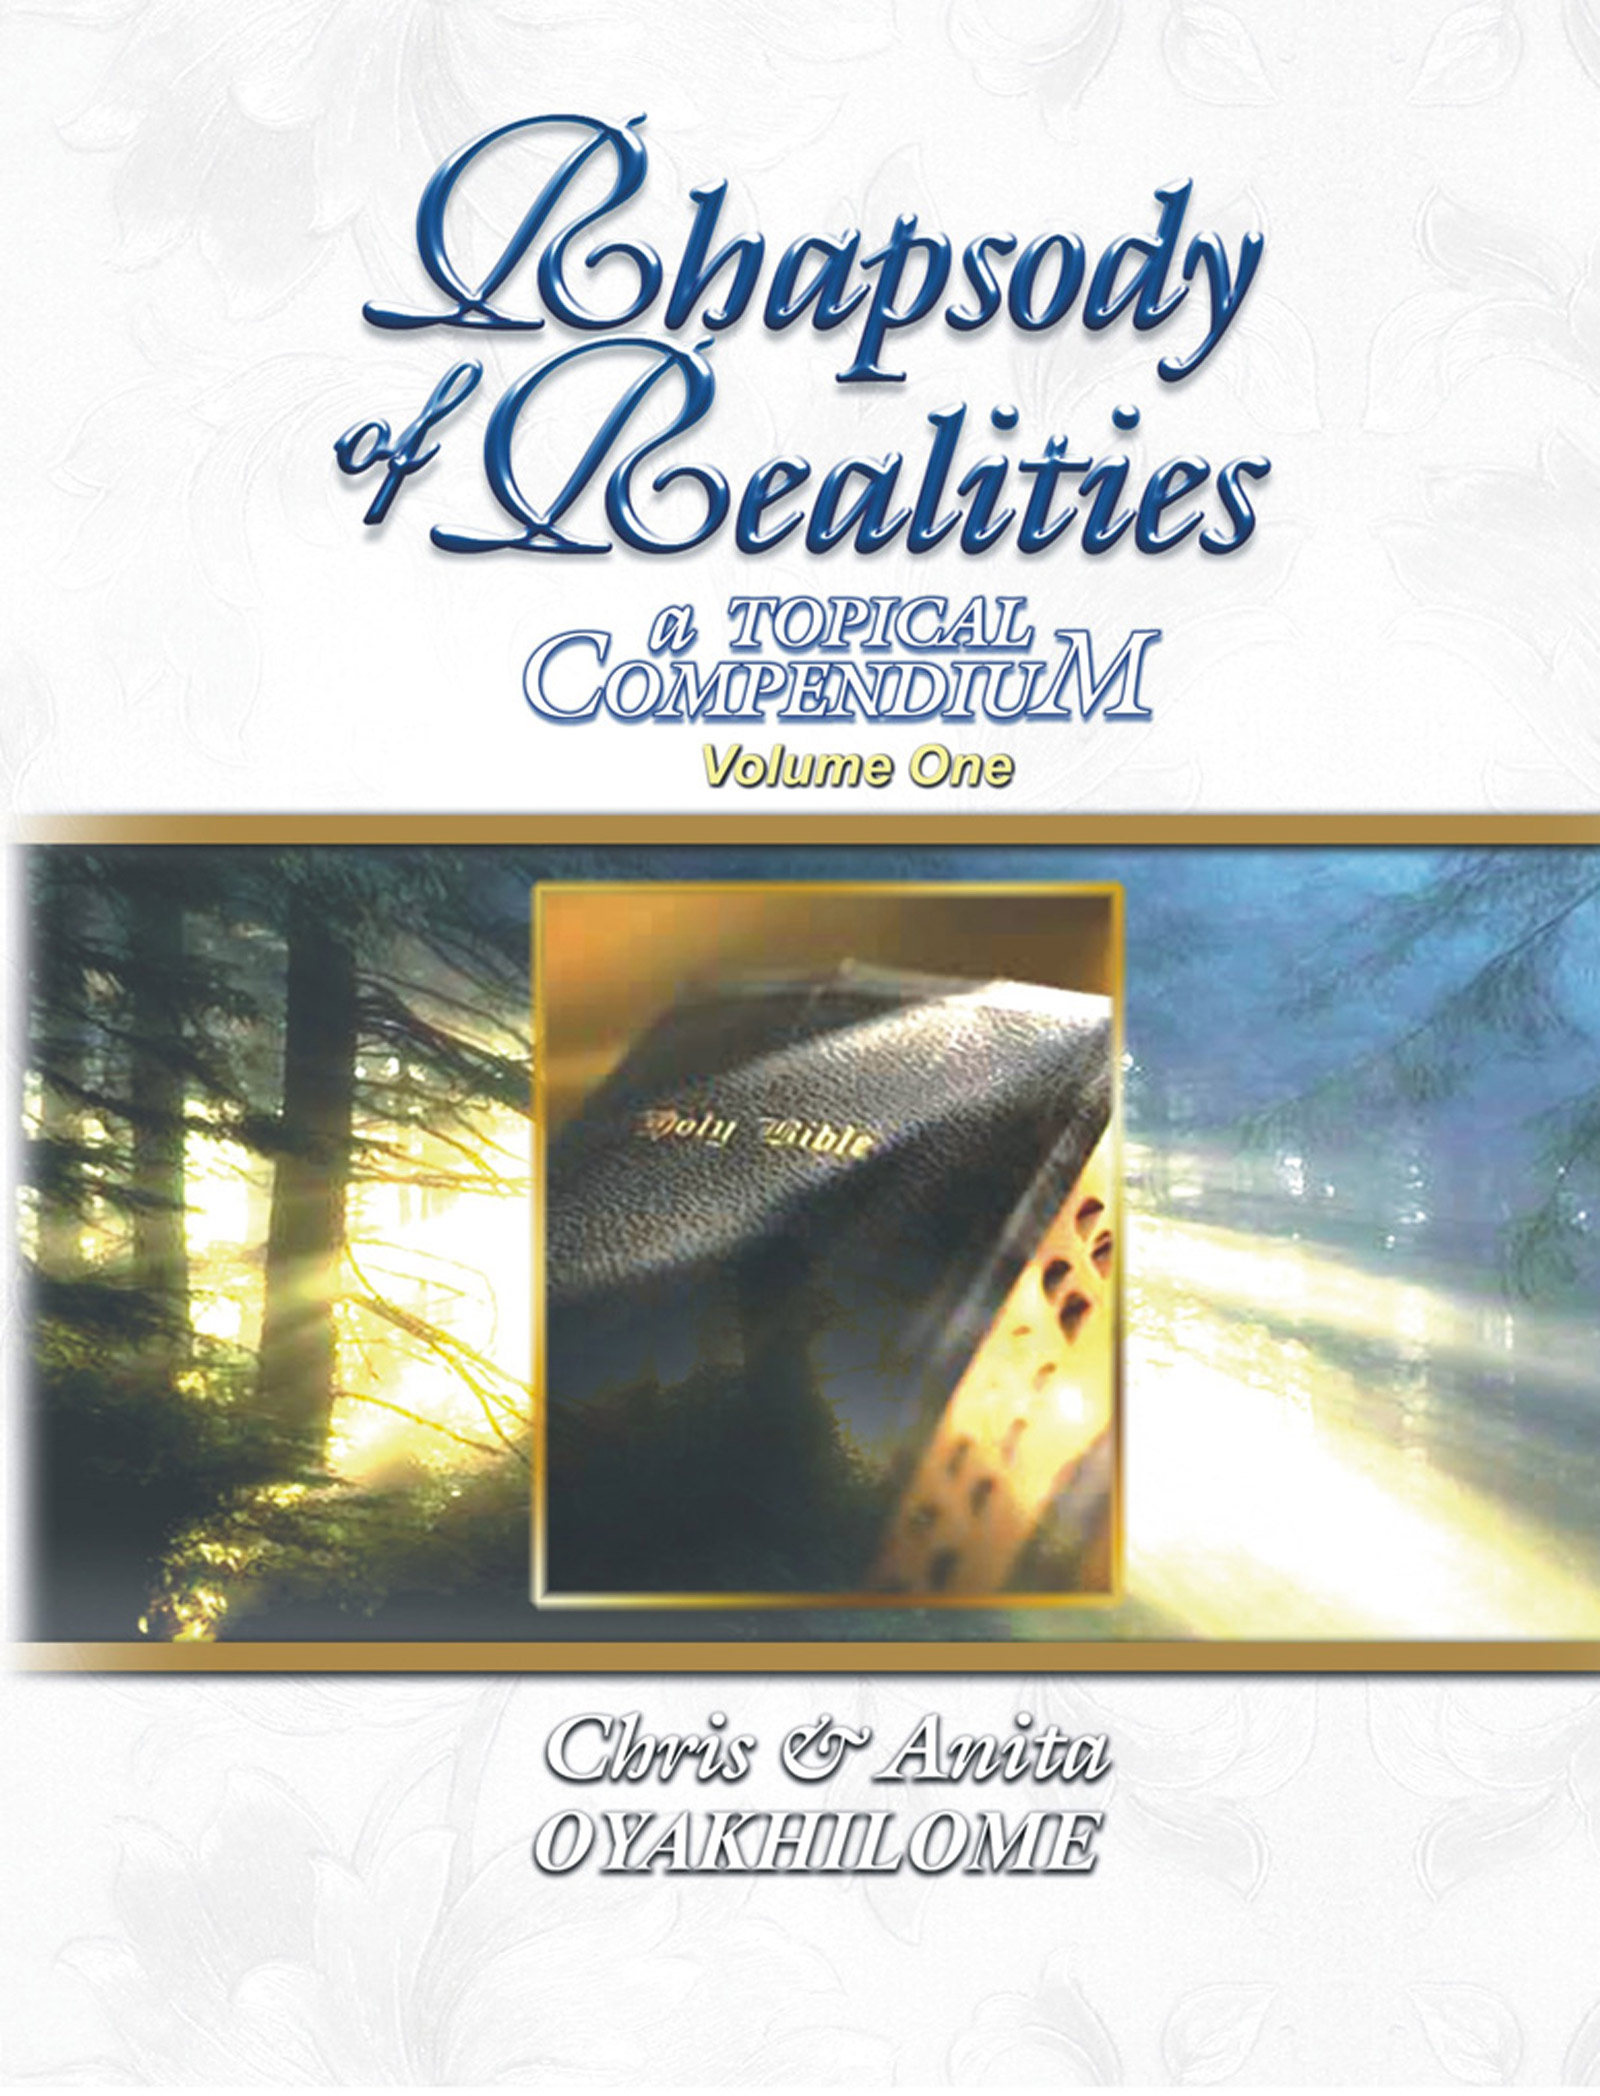 Pastor Chris and Anita Oyakhilome - Rhapsody of Realities Topical Compendium volume 1